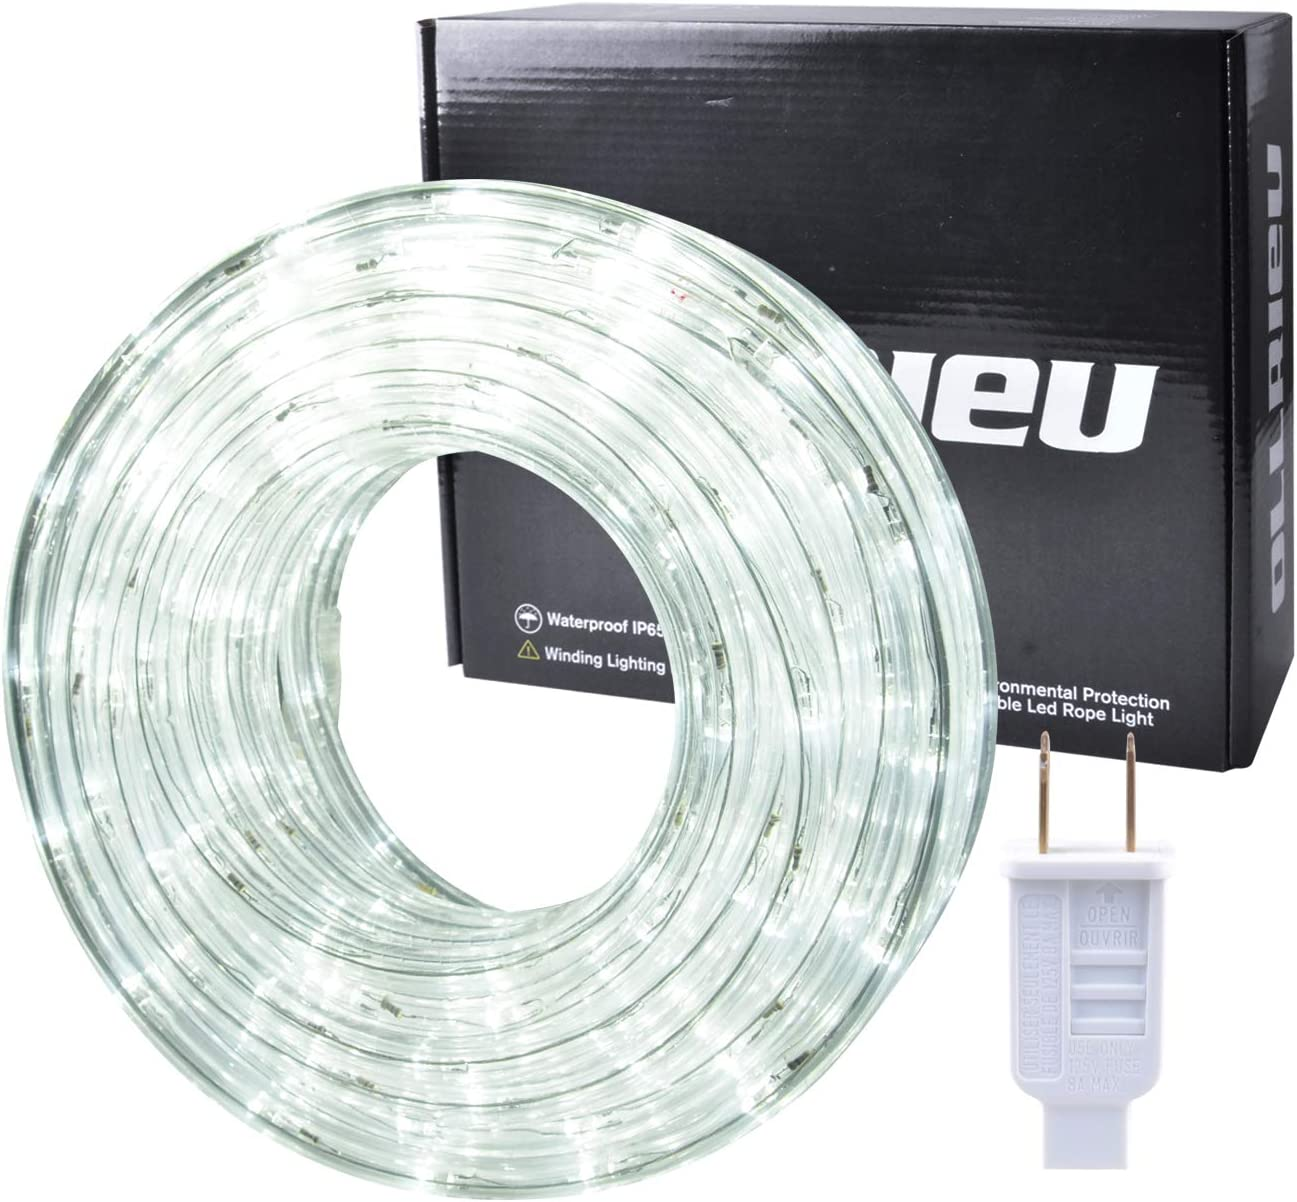 ollrieu LED Rope Lights,Flexible 50ft Waterproof Rope Lighting Strip for Indoor/Outdoor Use,Daylight White 6000K,360 LEDs 110V UL Listed Power Plug in,Connectable Light Strip for Patio Bedroom Ceiling